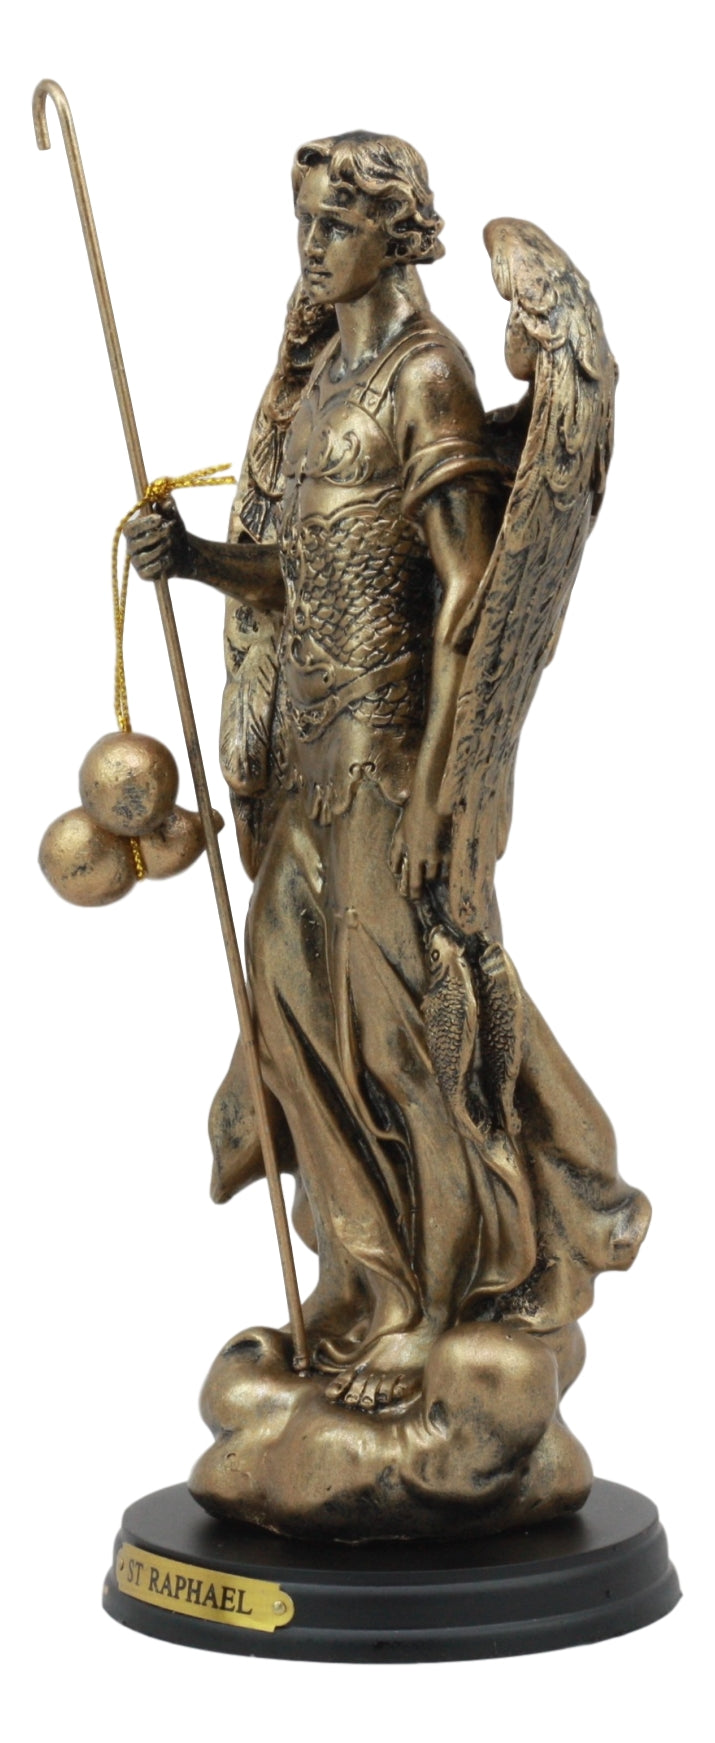 "Ebros Byzantine Eastern Orthodox Catholic Church Archangel of The Angelic Council Statue 8"" Tall Figurine with Brass Name Plate Wooden Base … (Raphael Healing Of God )"